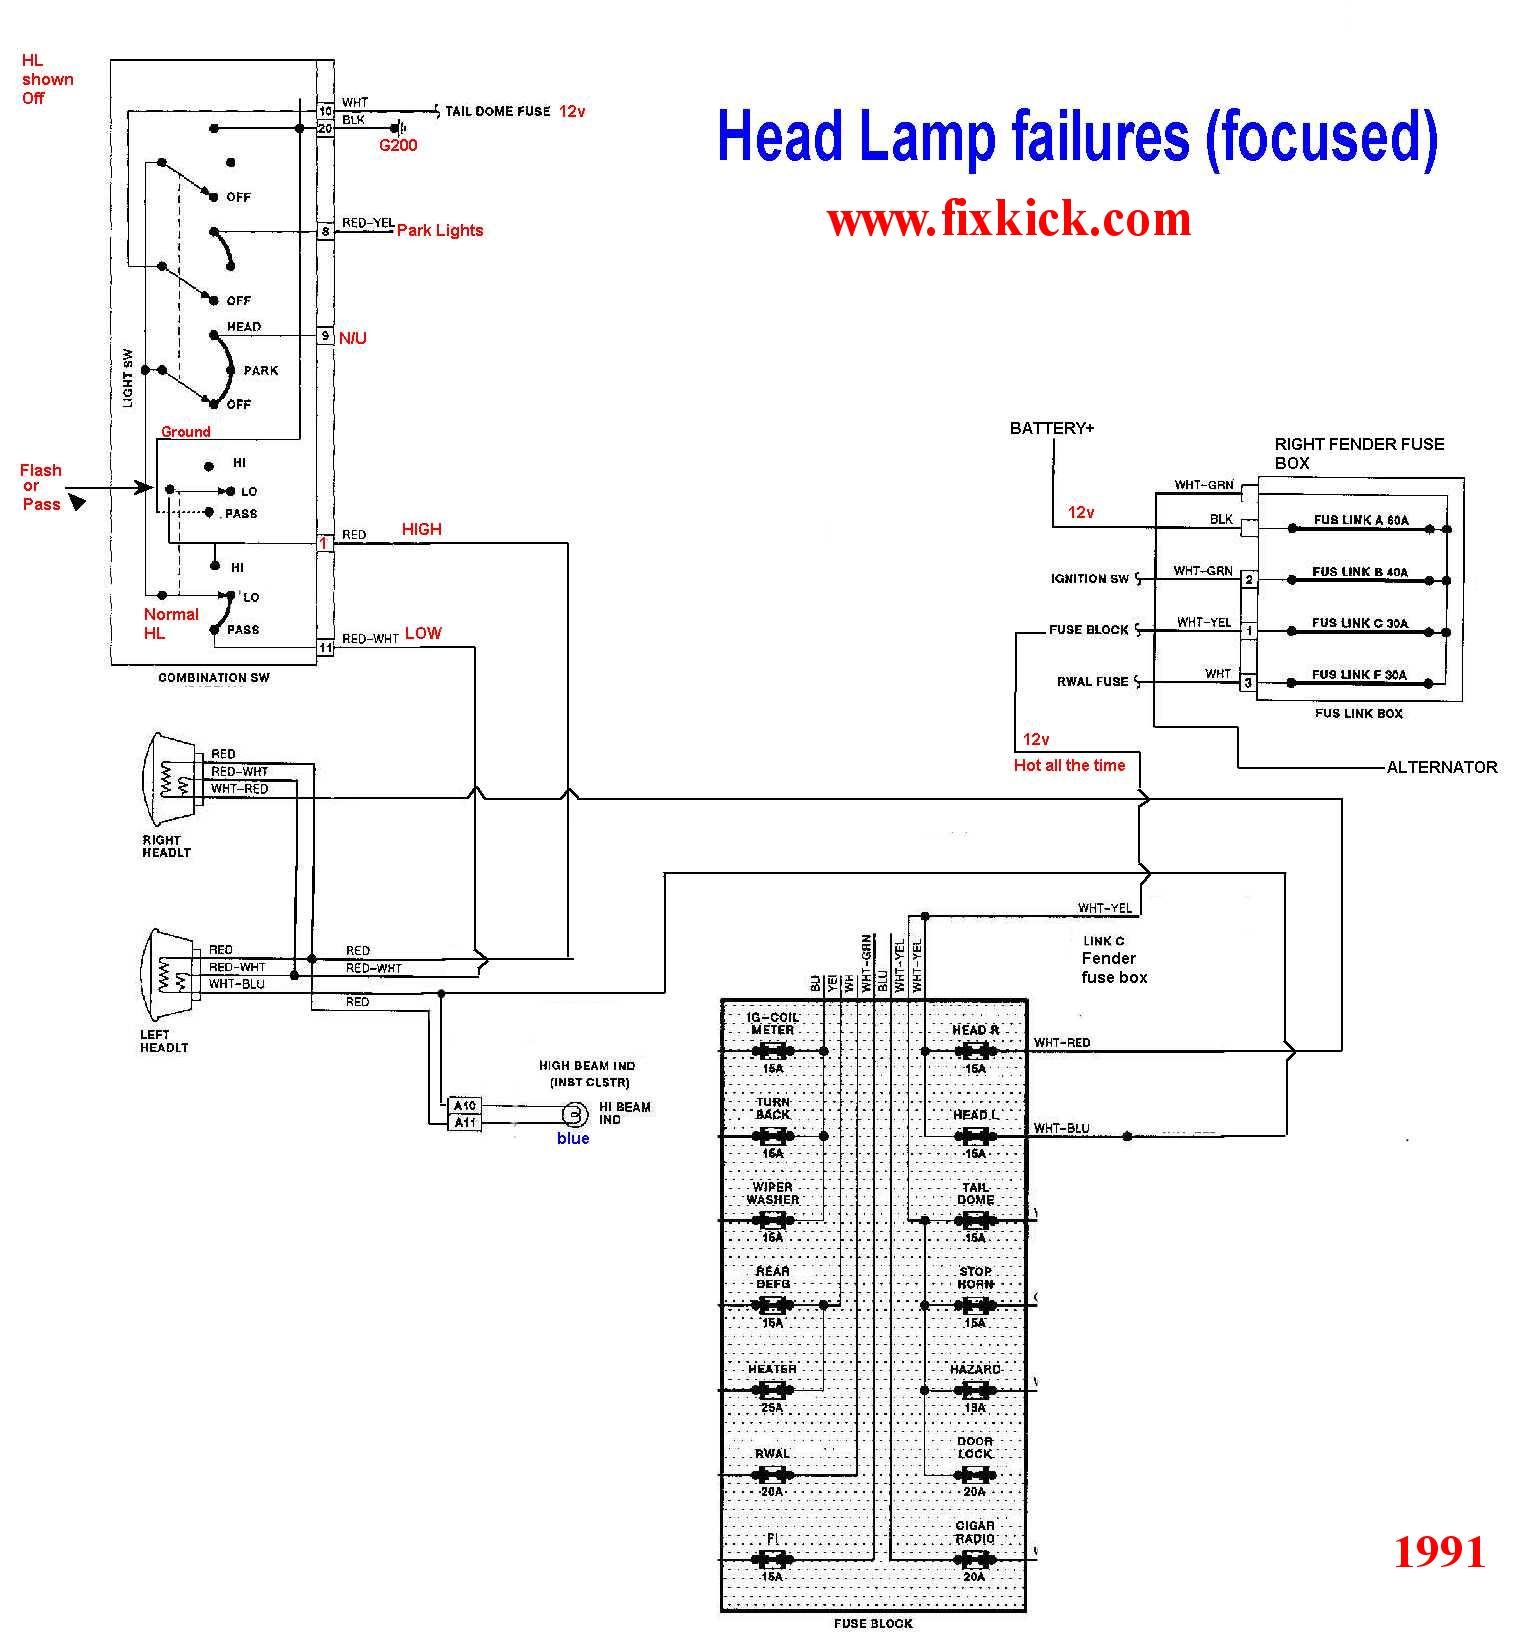 Schematics To Run Engine 1995 Toyota Camry Fuel Pump Wiring Diagram The 1991 Unified Head Light Schematic I Made